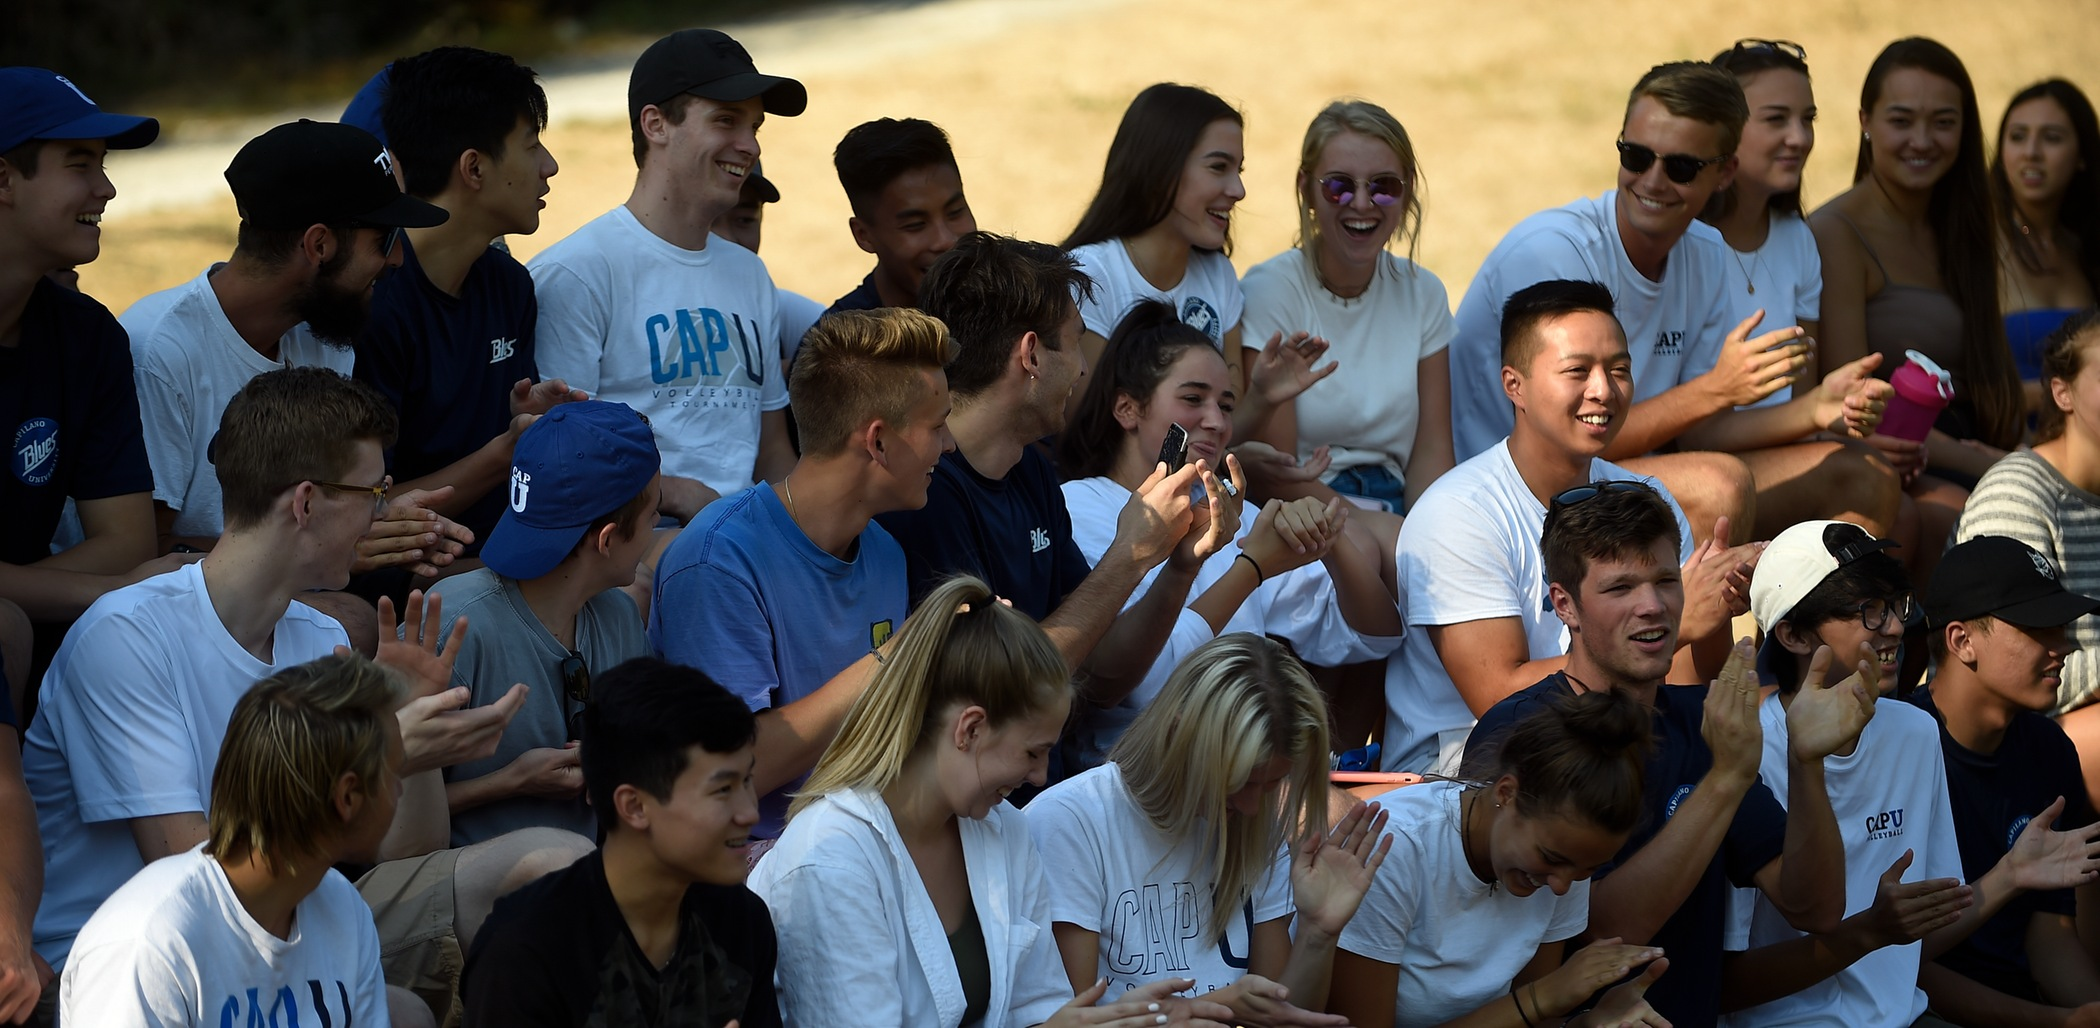 CapU students cheer on the Blues men's soccer game on Wednesday, September 5. Photo Tae Hoon Kim / Capilano University